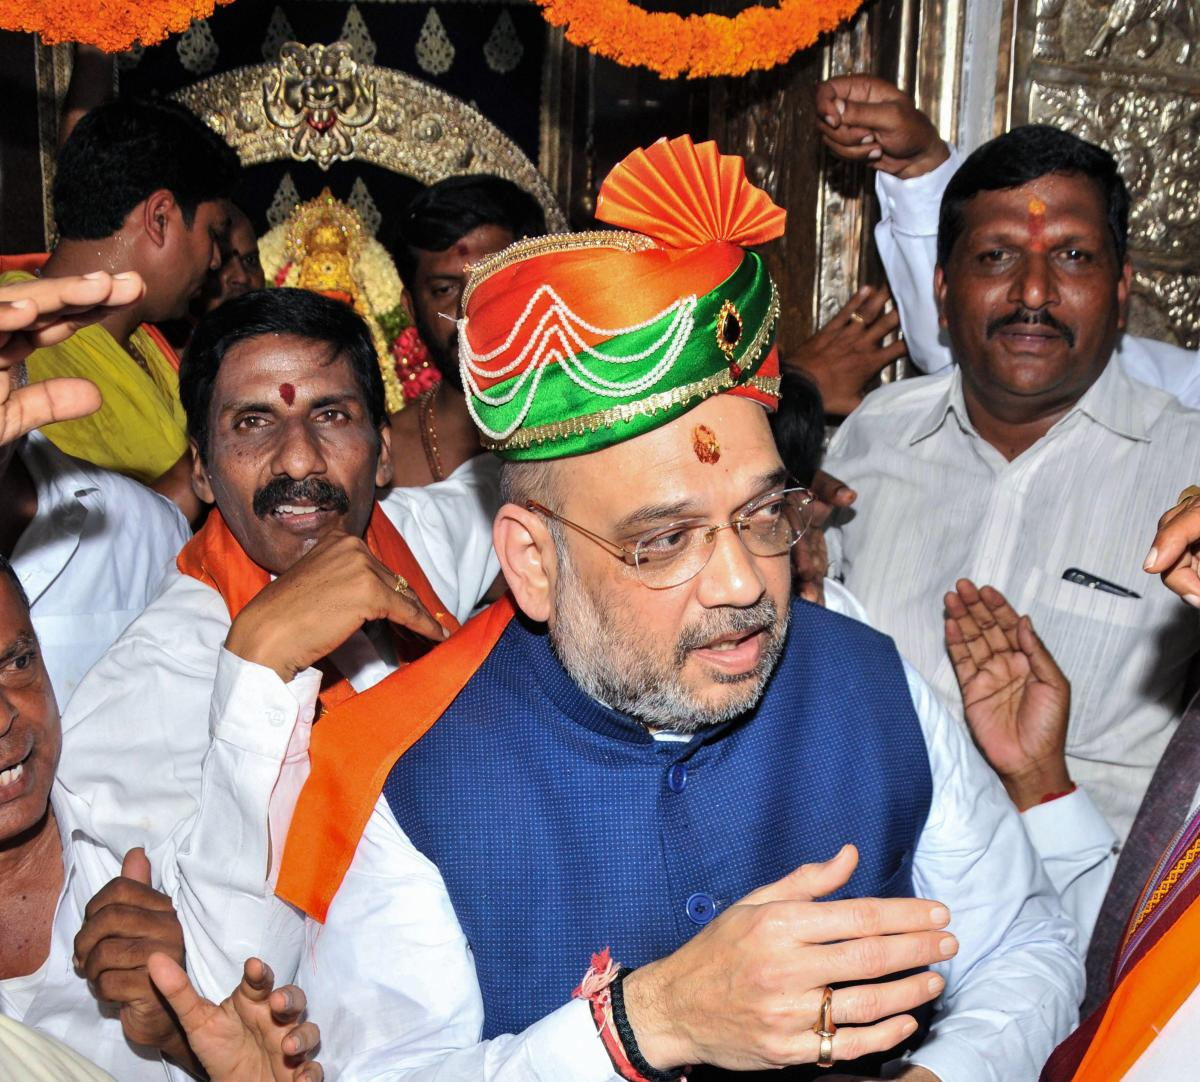 BJP National president Amit Shah arrives to offer prayers at Lal Darwaja Temple, in Hyderabad on Saturday. PTI